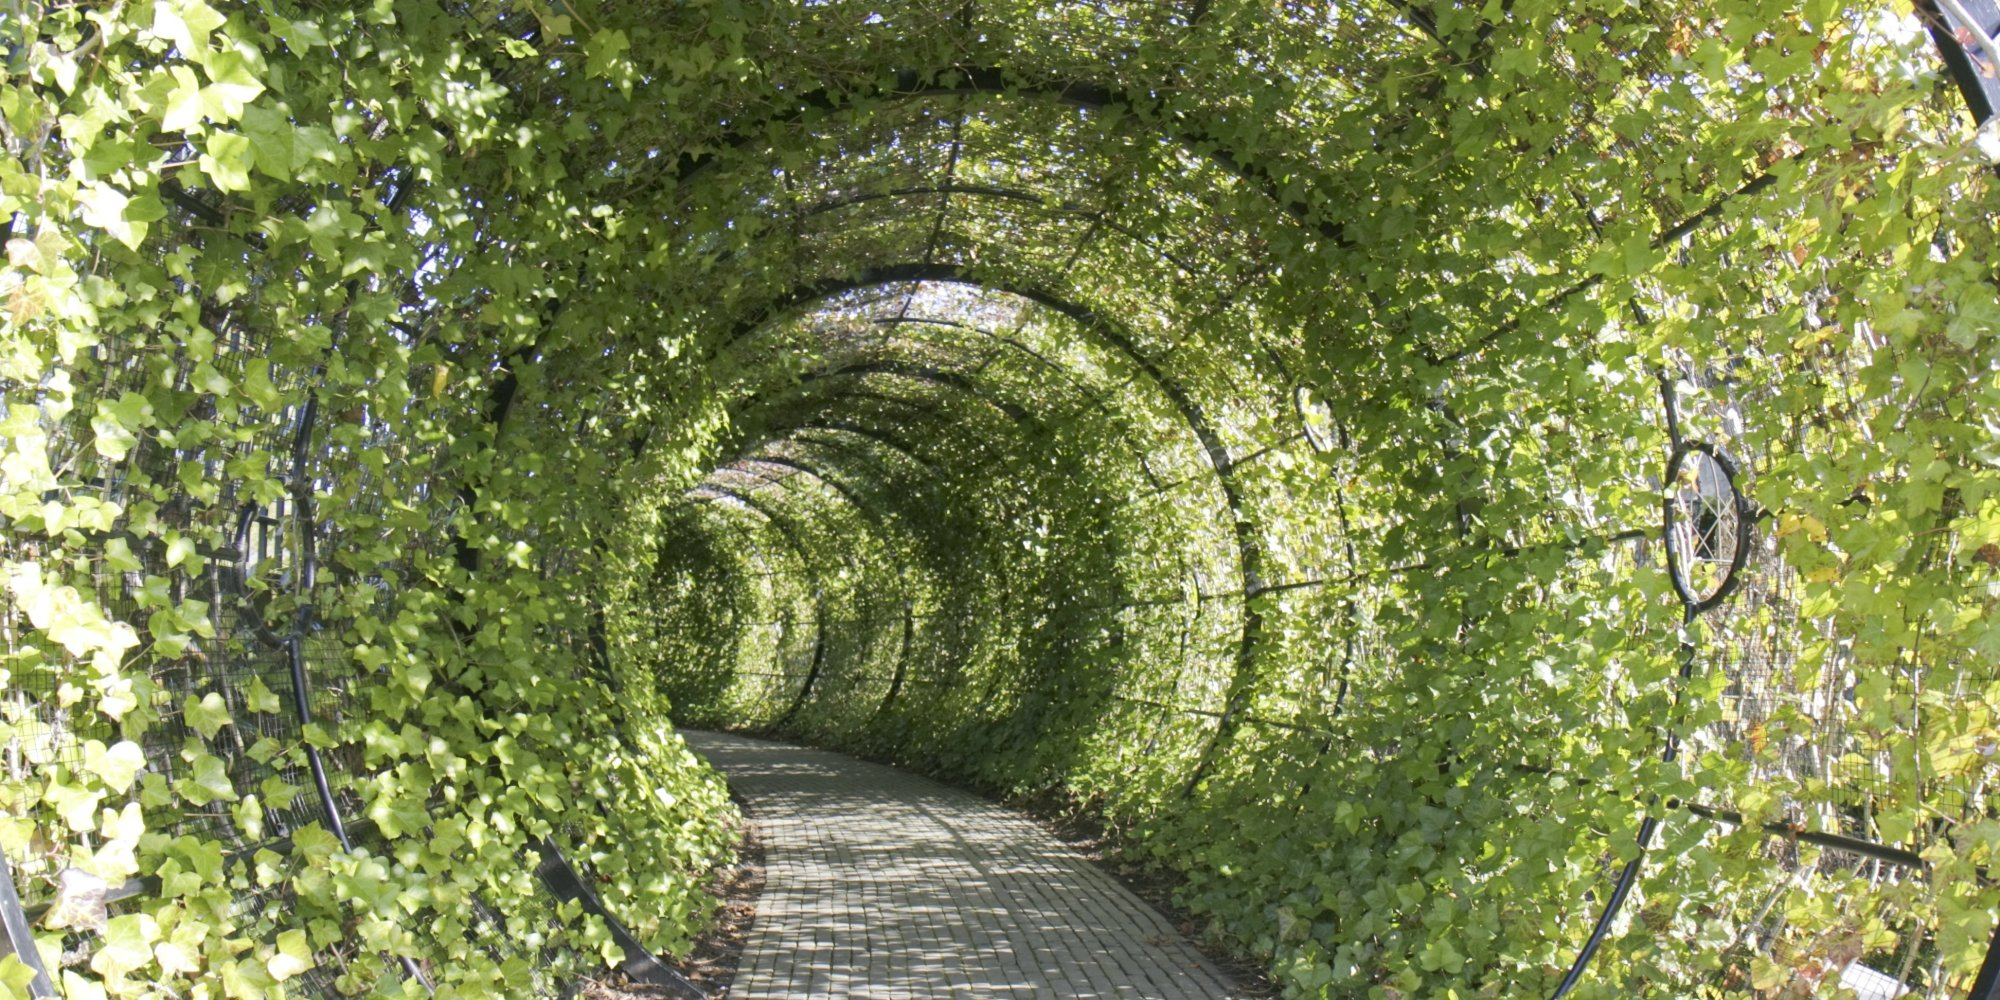 A Beautiful Tourist Garden Full Of Plants That Could Kill ...